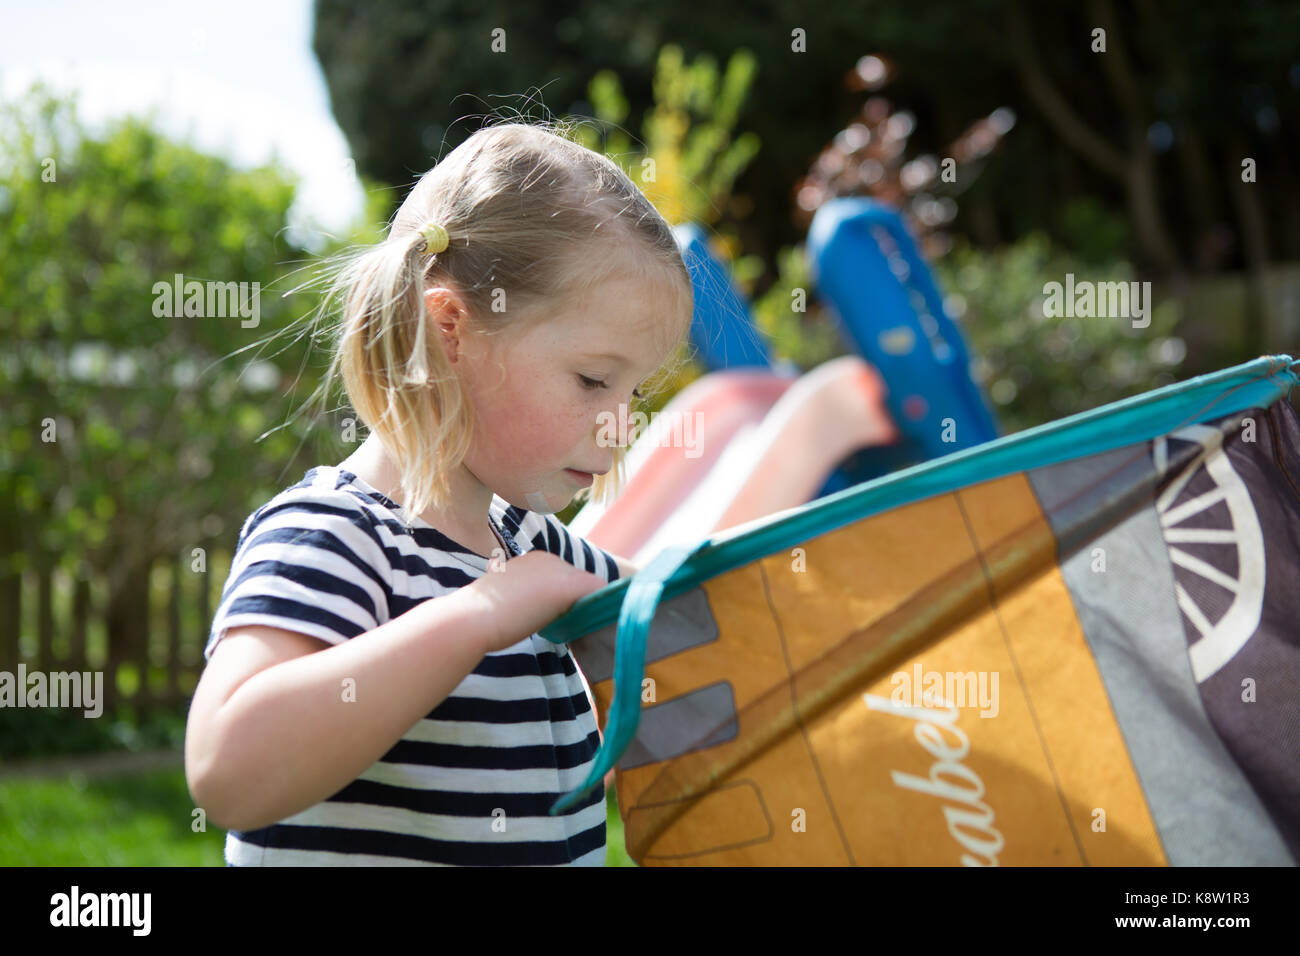 British children playing boys and girls - Stock Image